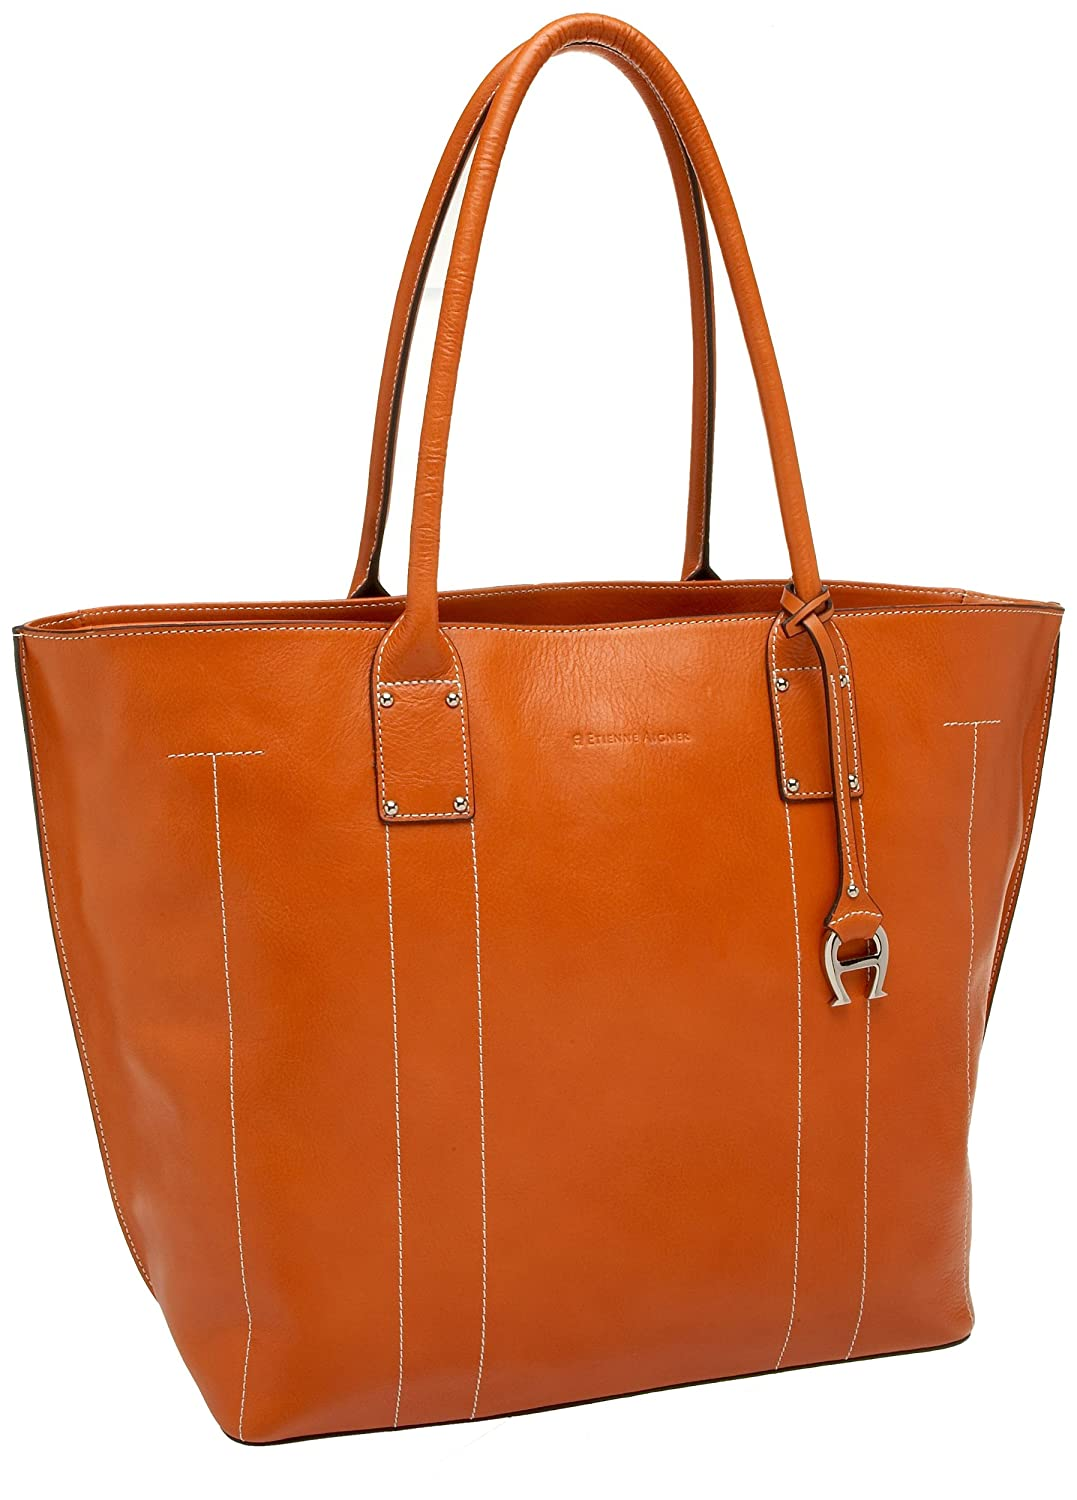 Etienne Aigner Modern Tote - Free Overnight Shipping & Return Shipping: Endless.com :  shopping bag summer bags